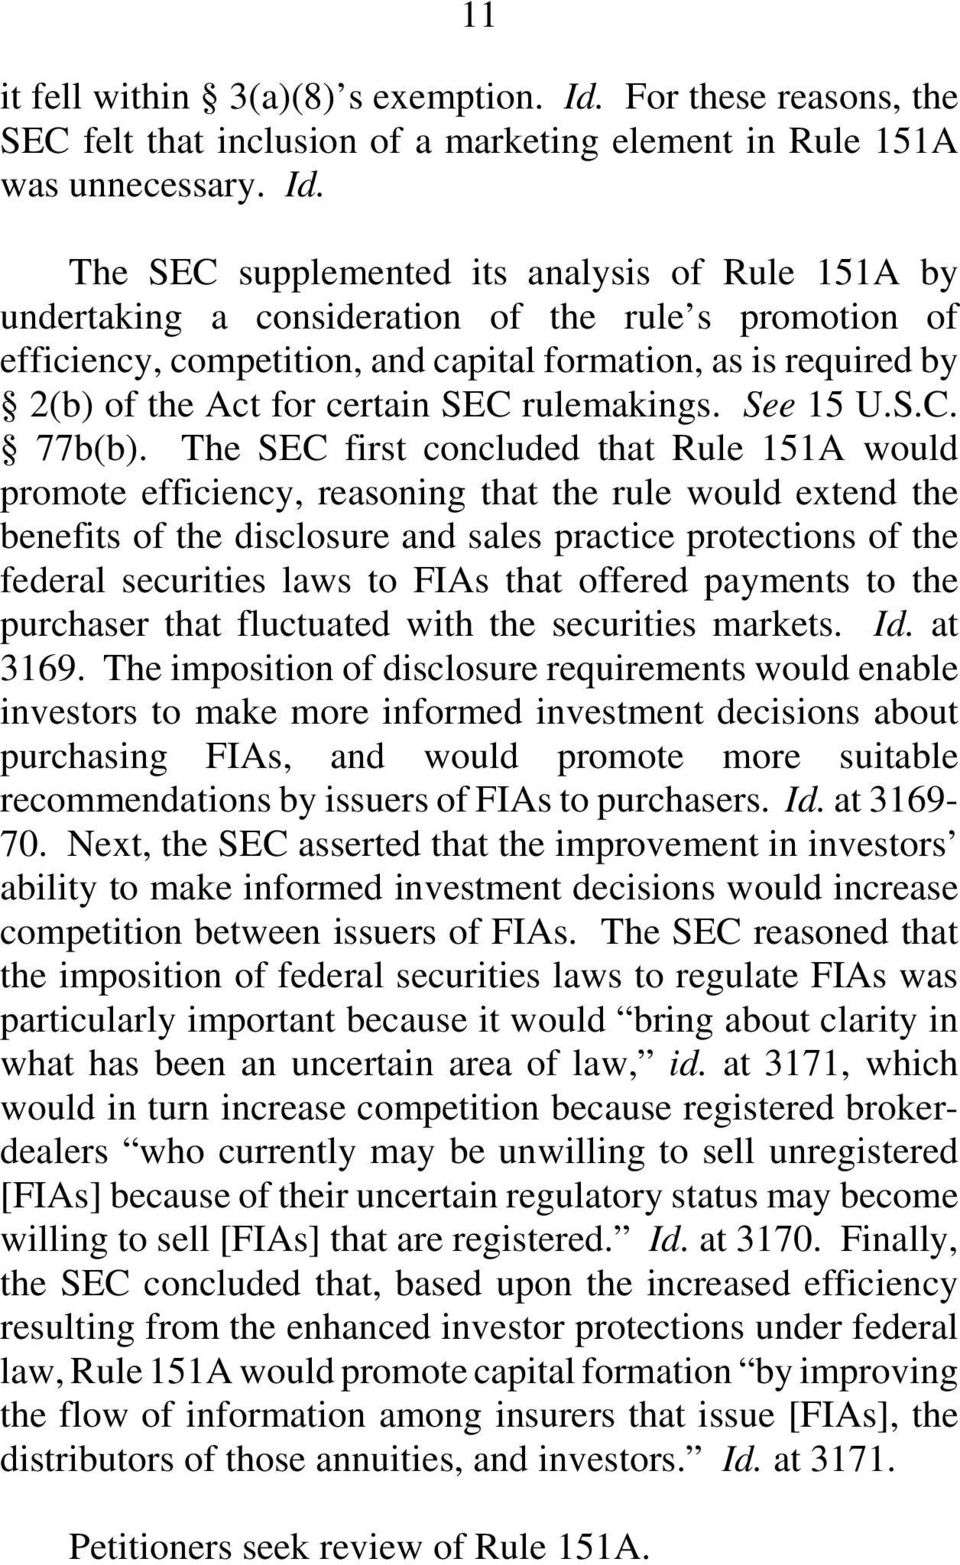 The SEC supplemented its analysis of Rule 151A by undertaking a consideration of the rule s promotion of efficiency, competition, and capital formation, as is required by 2(b) of the Act for certain